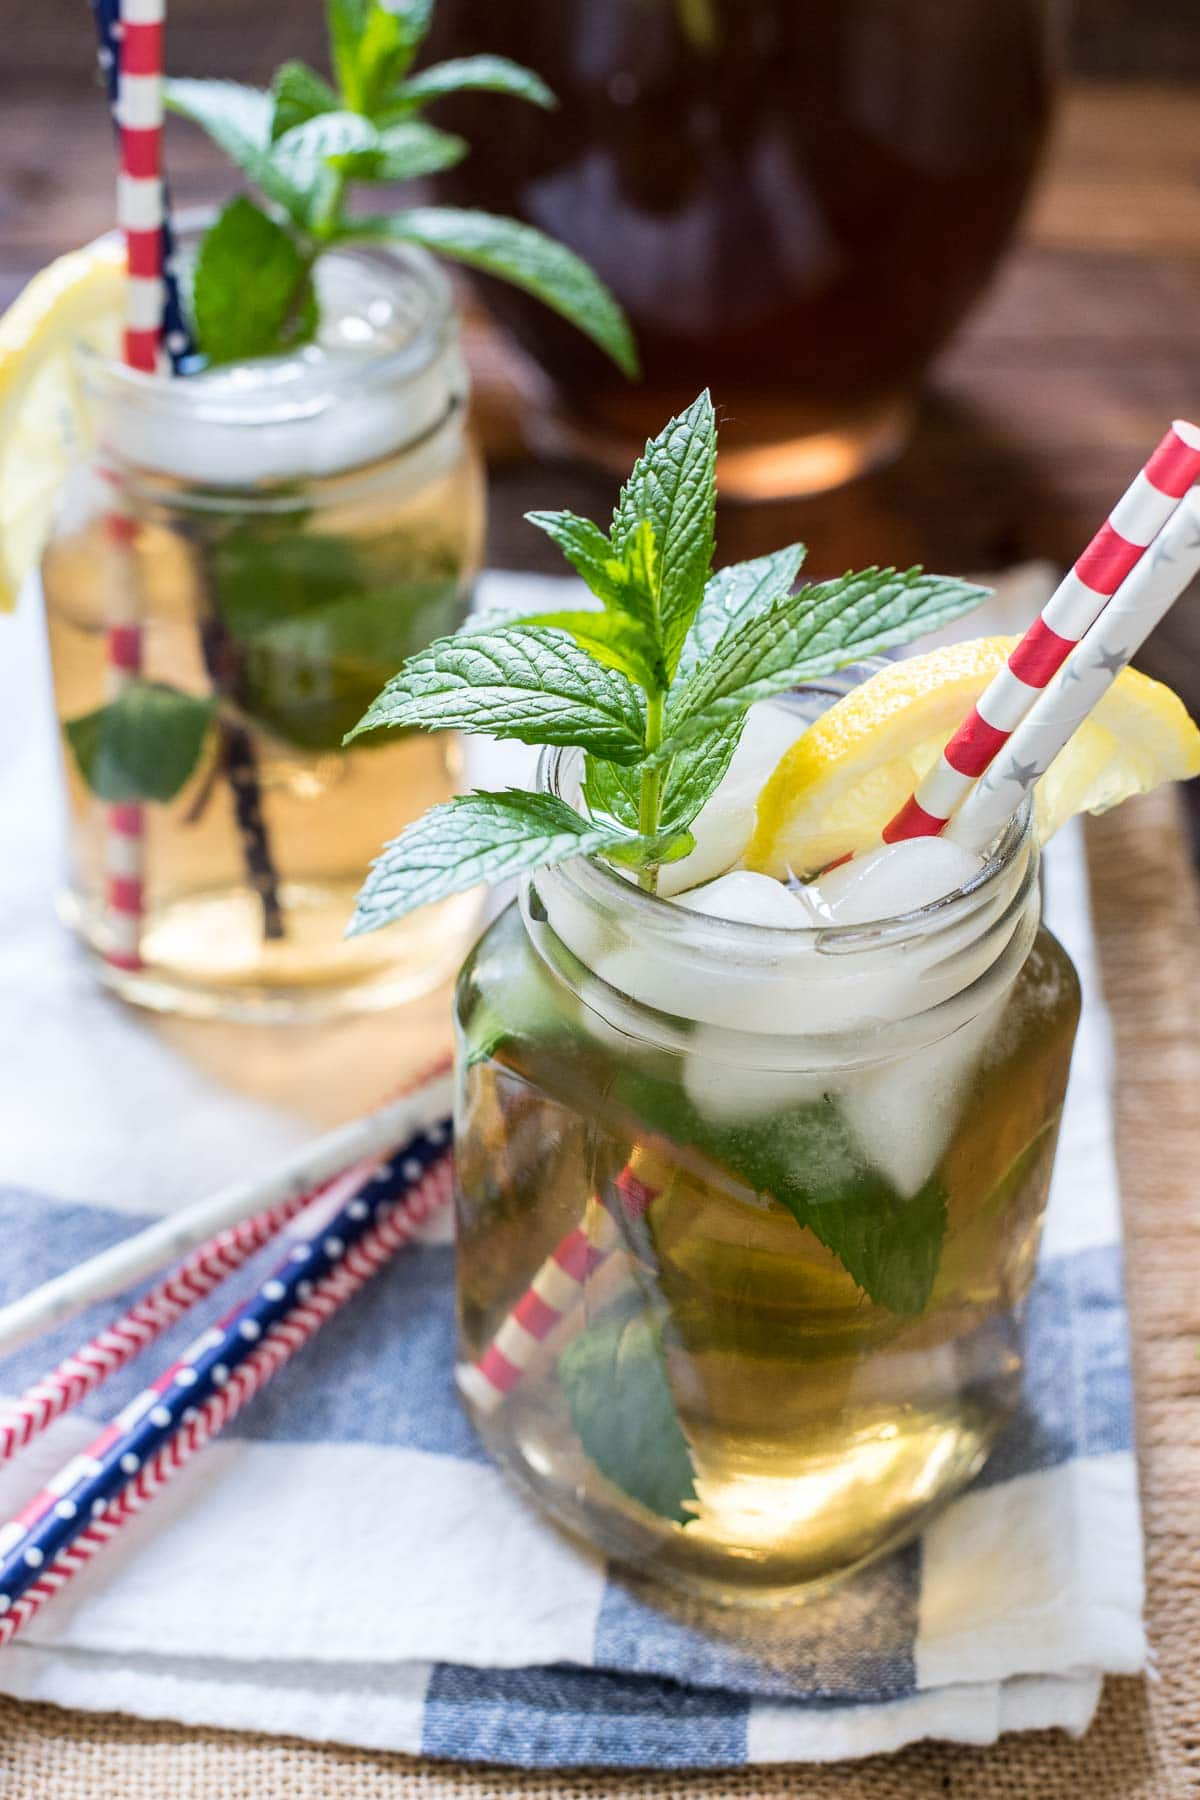 If you need a signature summer beverage, look no further than this refreshing Mint Iced Tea recipe!